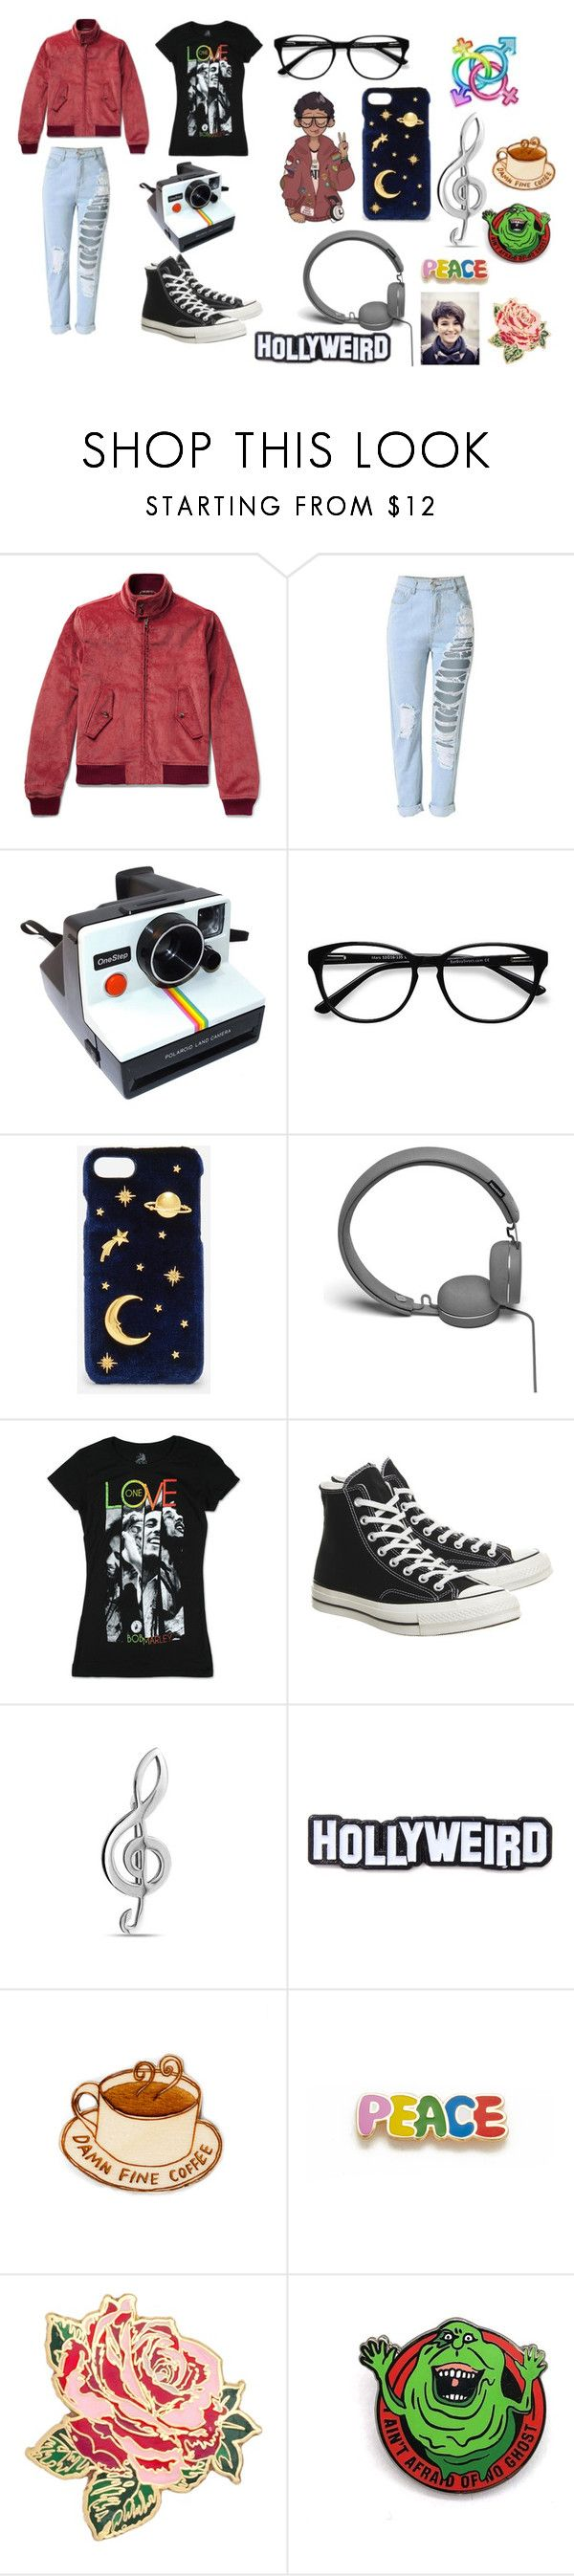 """Michael~Be more chill"" by mercy123 ❤ liked on Polyvore featuring Polaroid, EyeBuyDirect.com, CHARLES & KEITH, Urbanears, Converse, Bling Jewelry, Laser Kitten, Georgia Perry, Bando and bathroom"